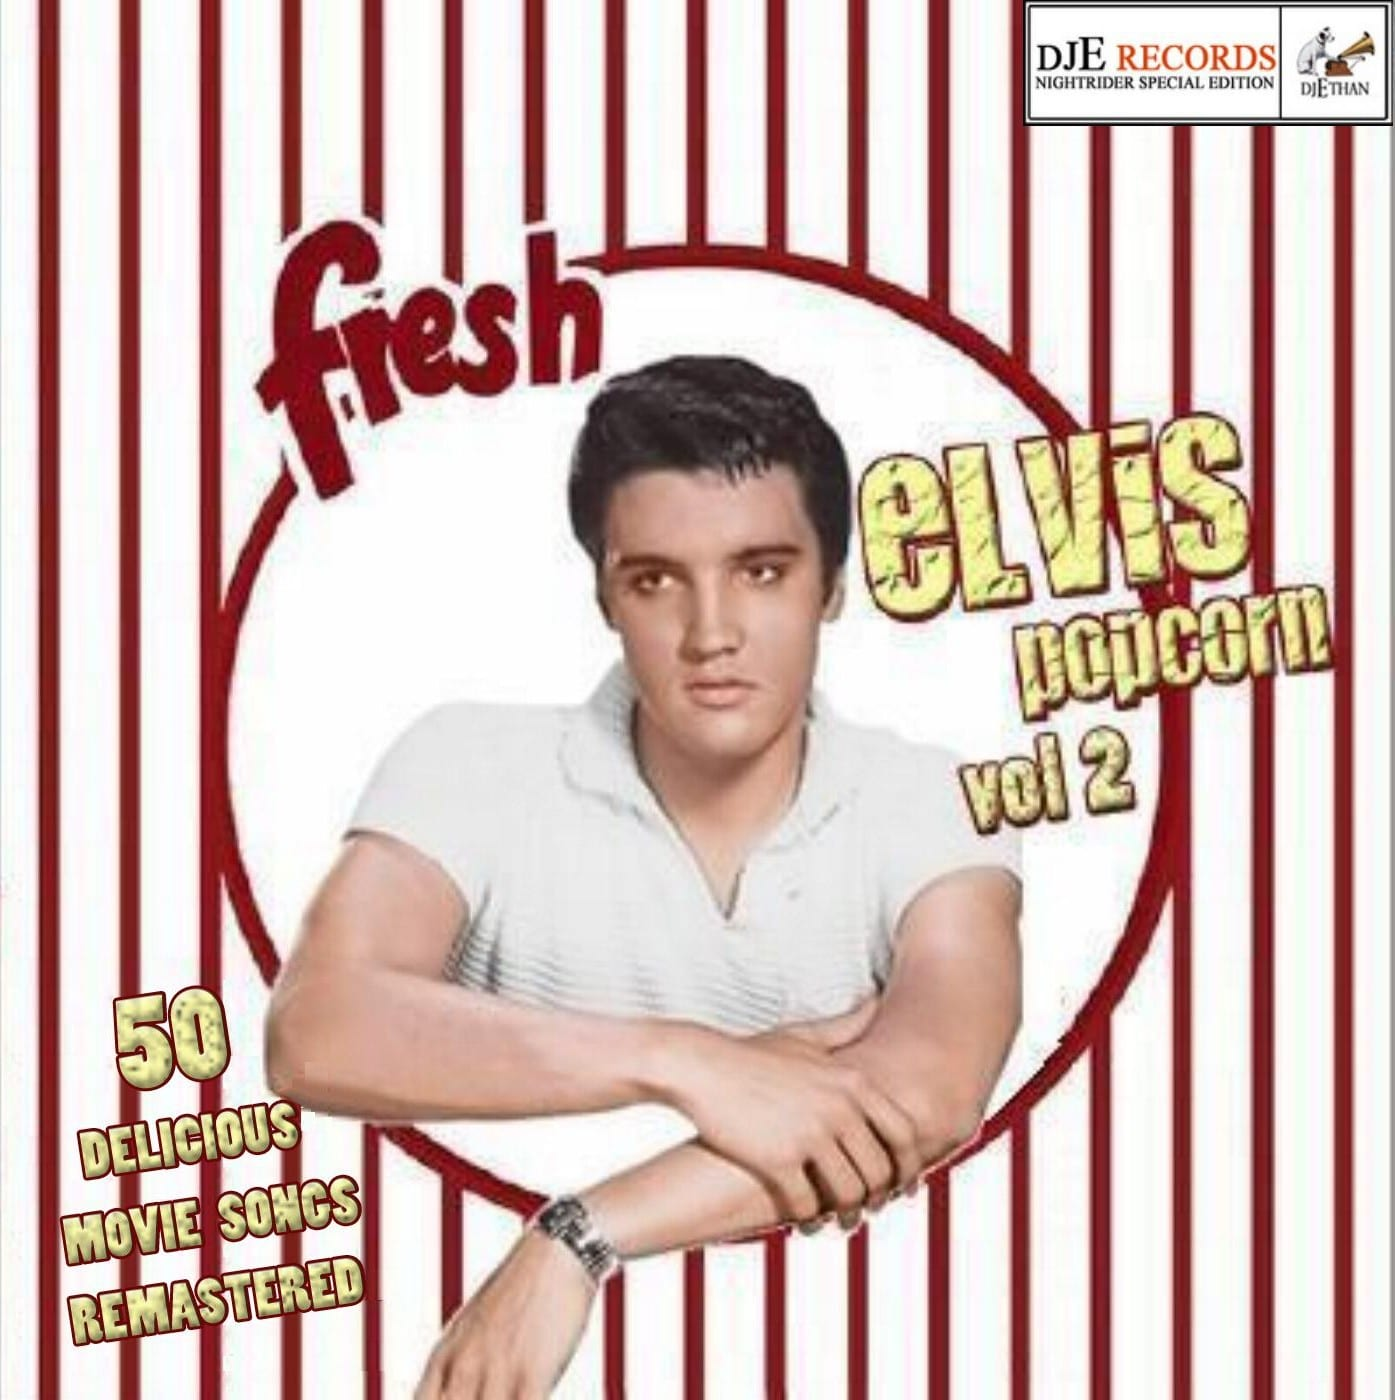 Elvis Presley - Popcorn, Vol. 2 (2013) 2 CD SET 8